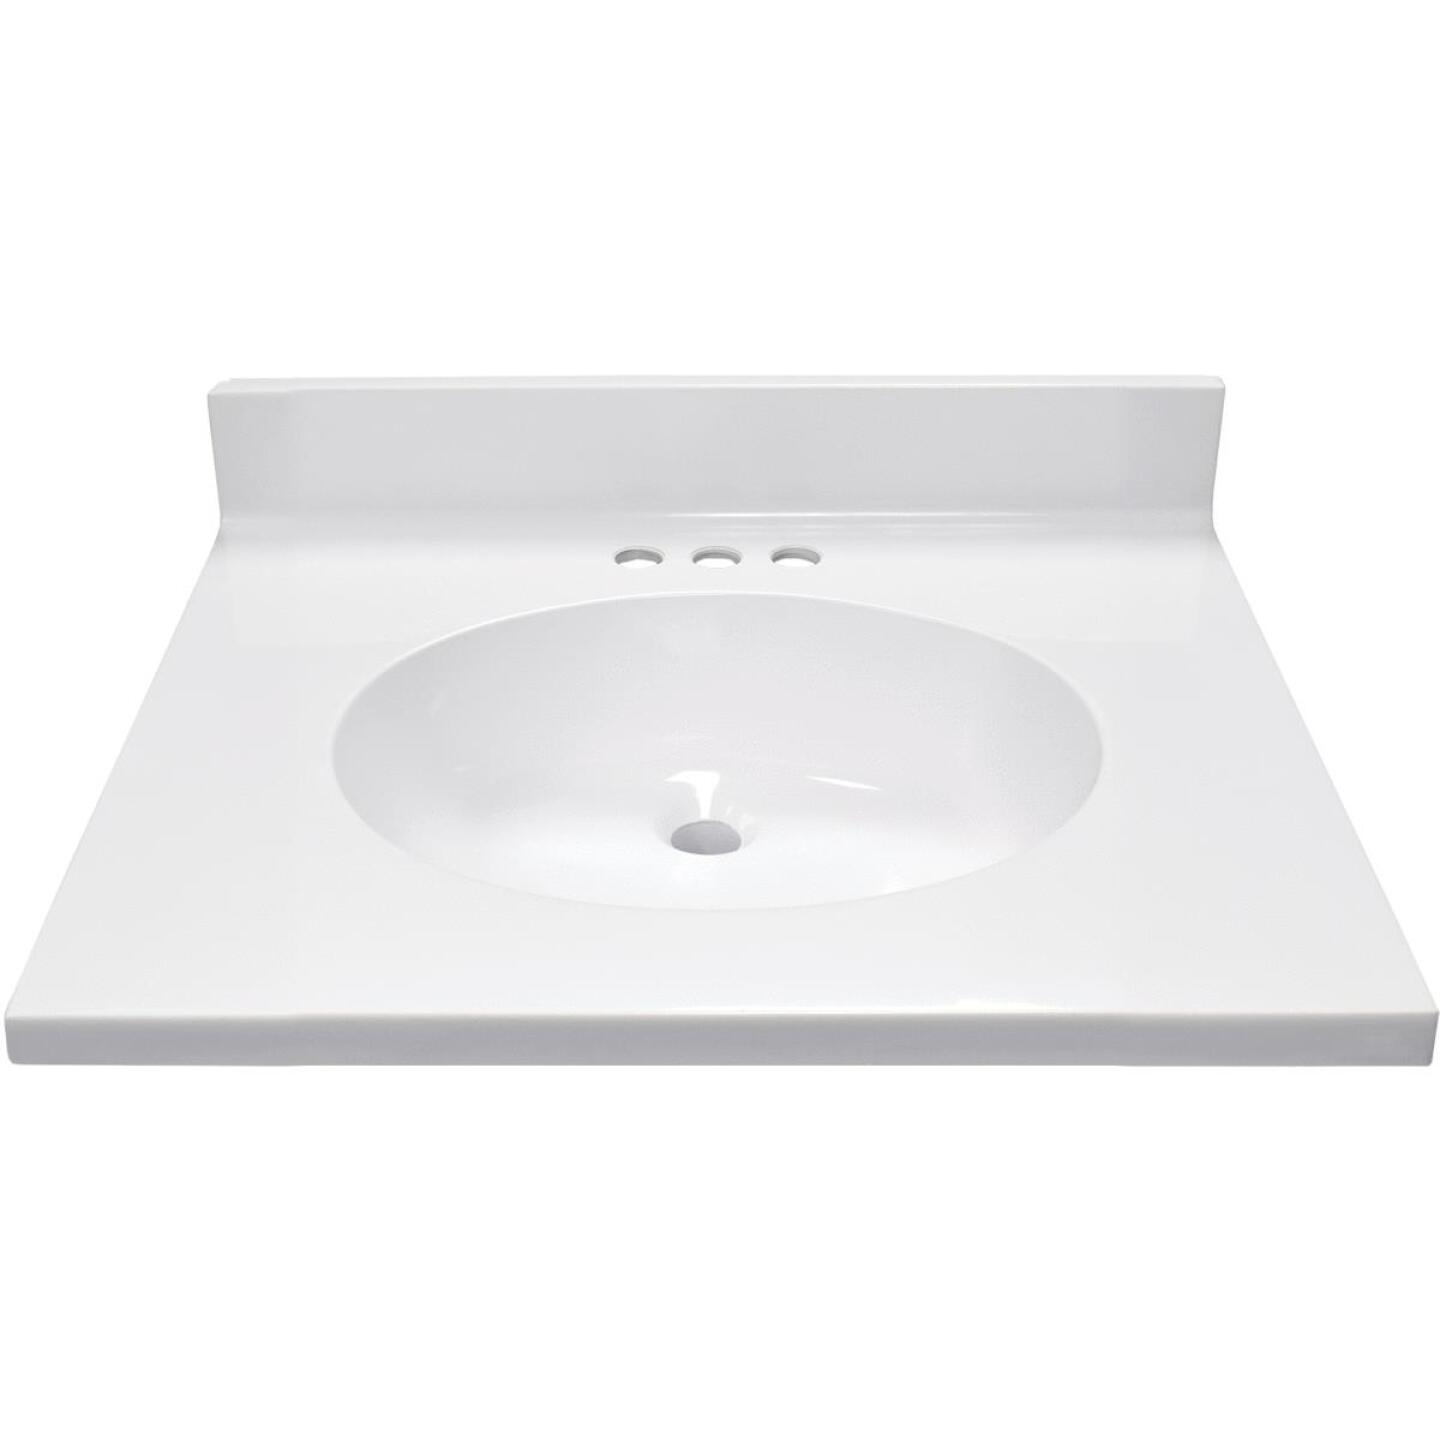 Modular Vanity Tops 25 In. W x 22 In. D Solid White Cultured Marble Vanity Top with Oval Bowl Image 2